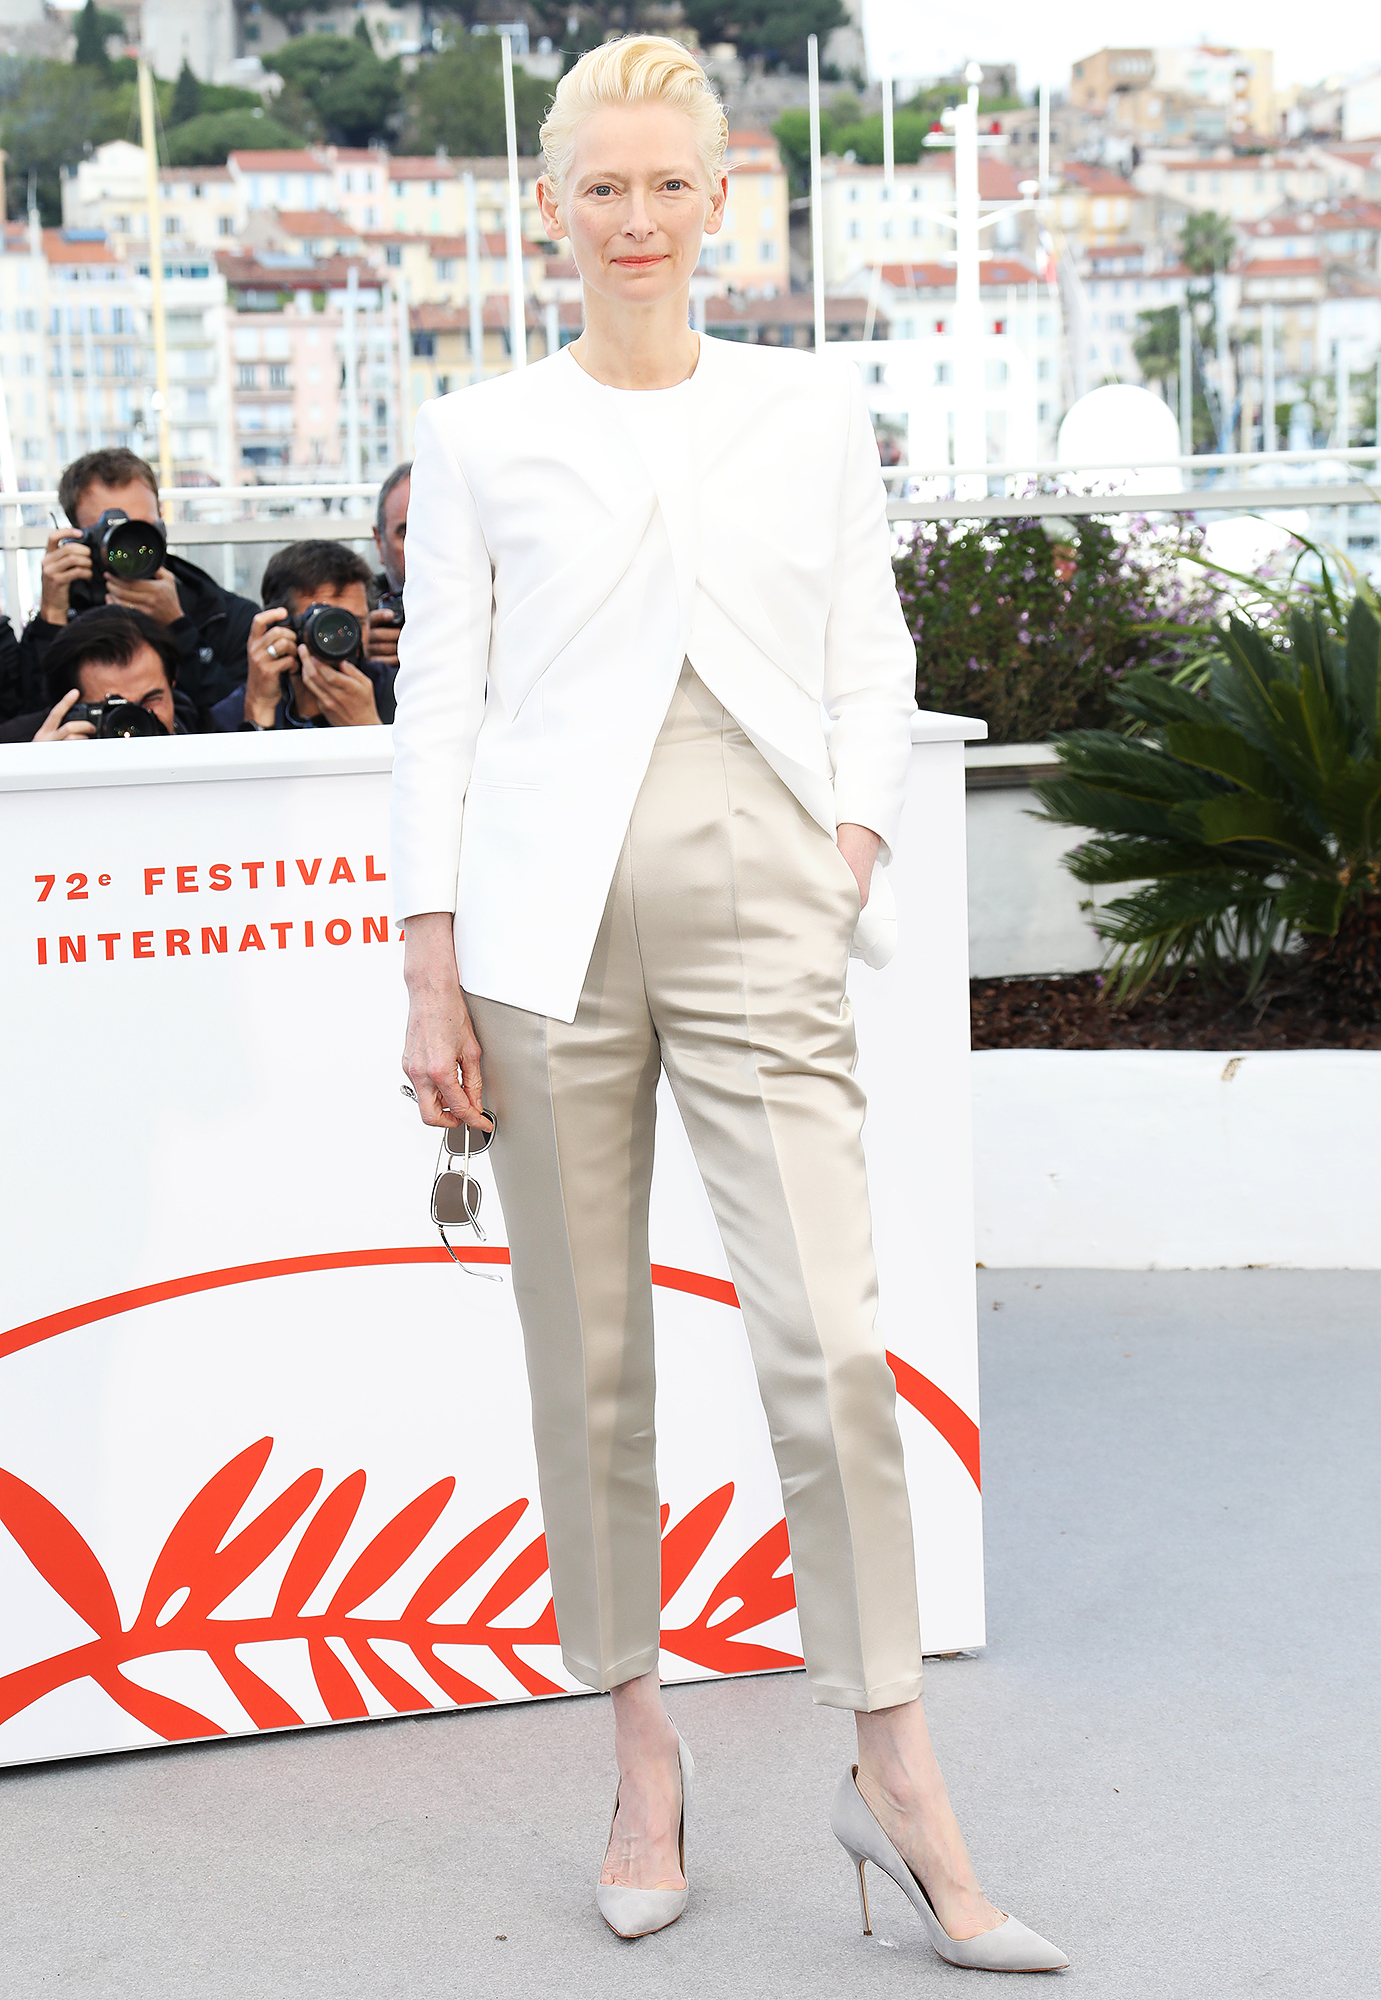 Tilda-Swinton - At the Dead Don't Die photo-call on Wednesday, May 15, the actress paired a white Haider Ackermann blazer with khaki pants and Manolo Blahnik pumps.